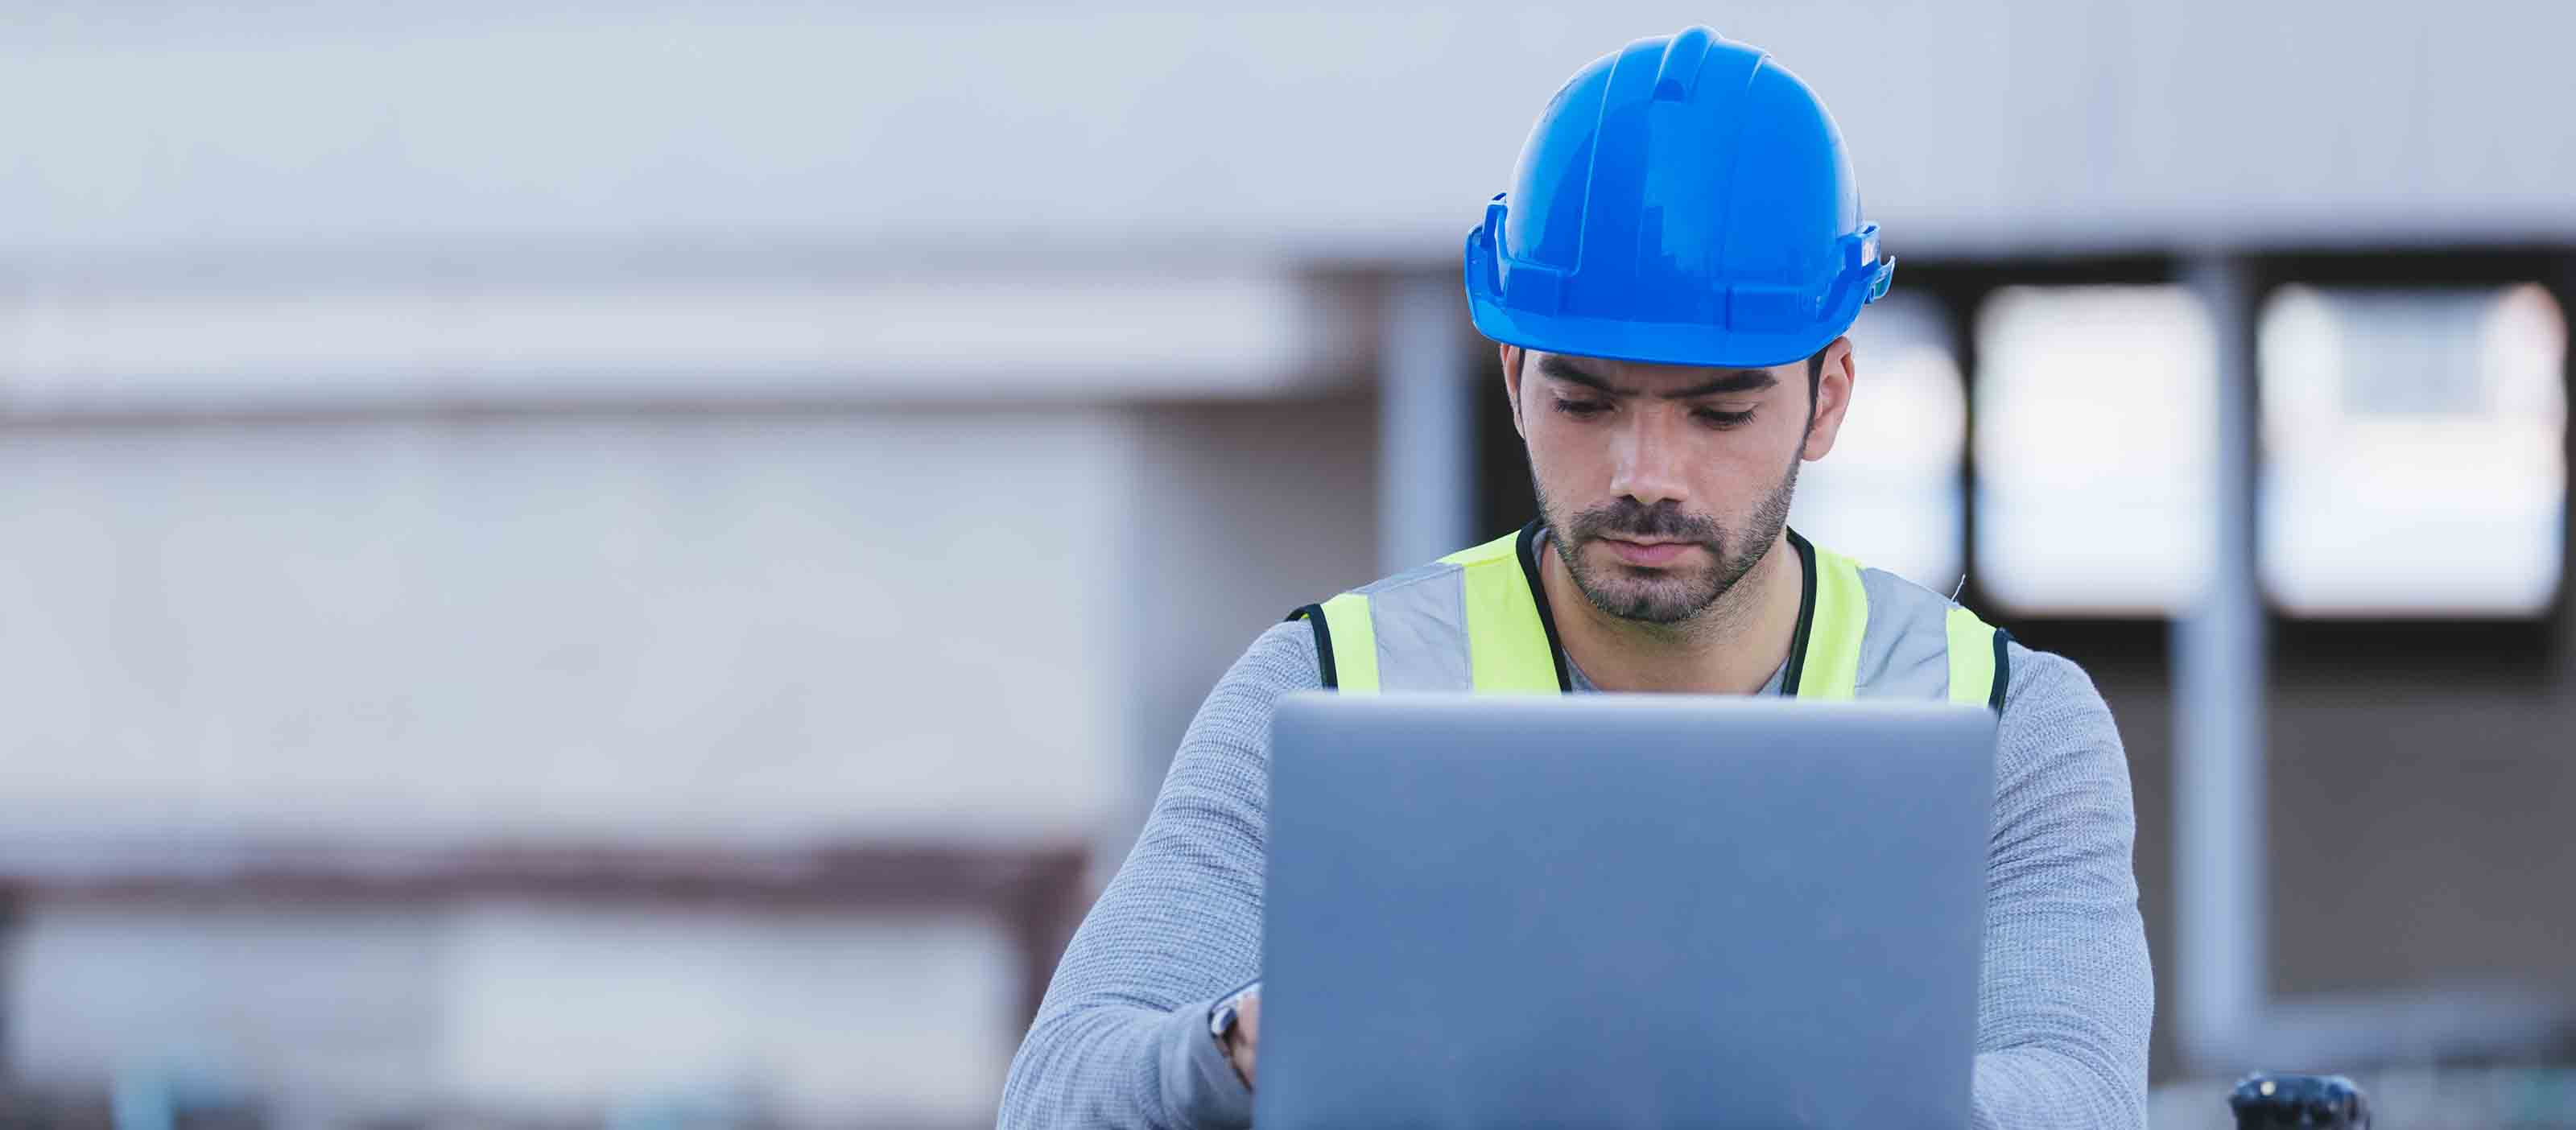 Connected worker using GE Digital industrial and digital twin software